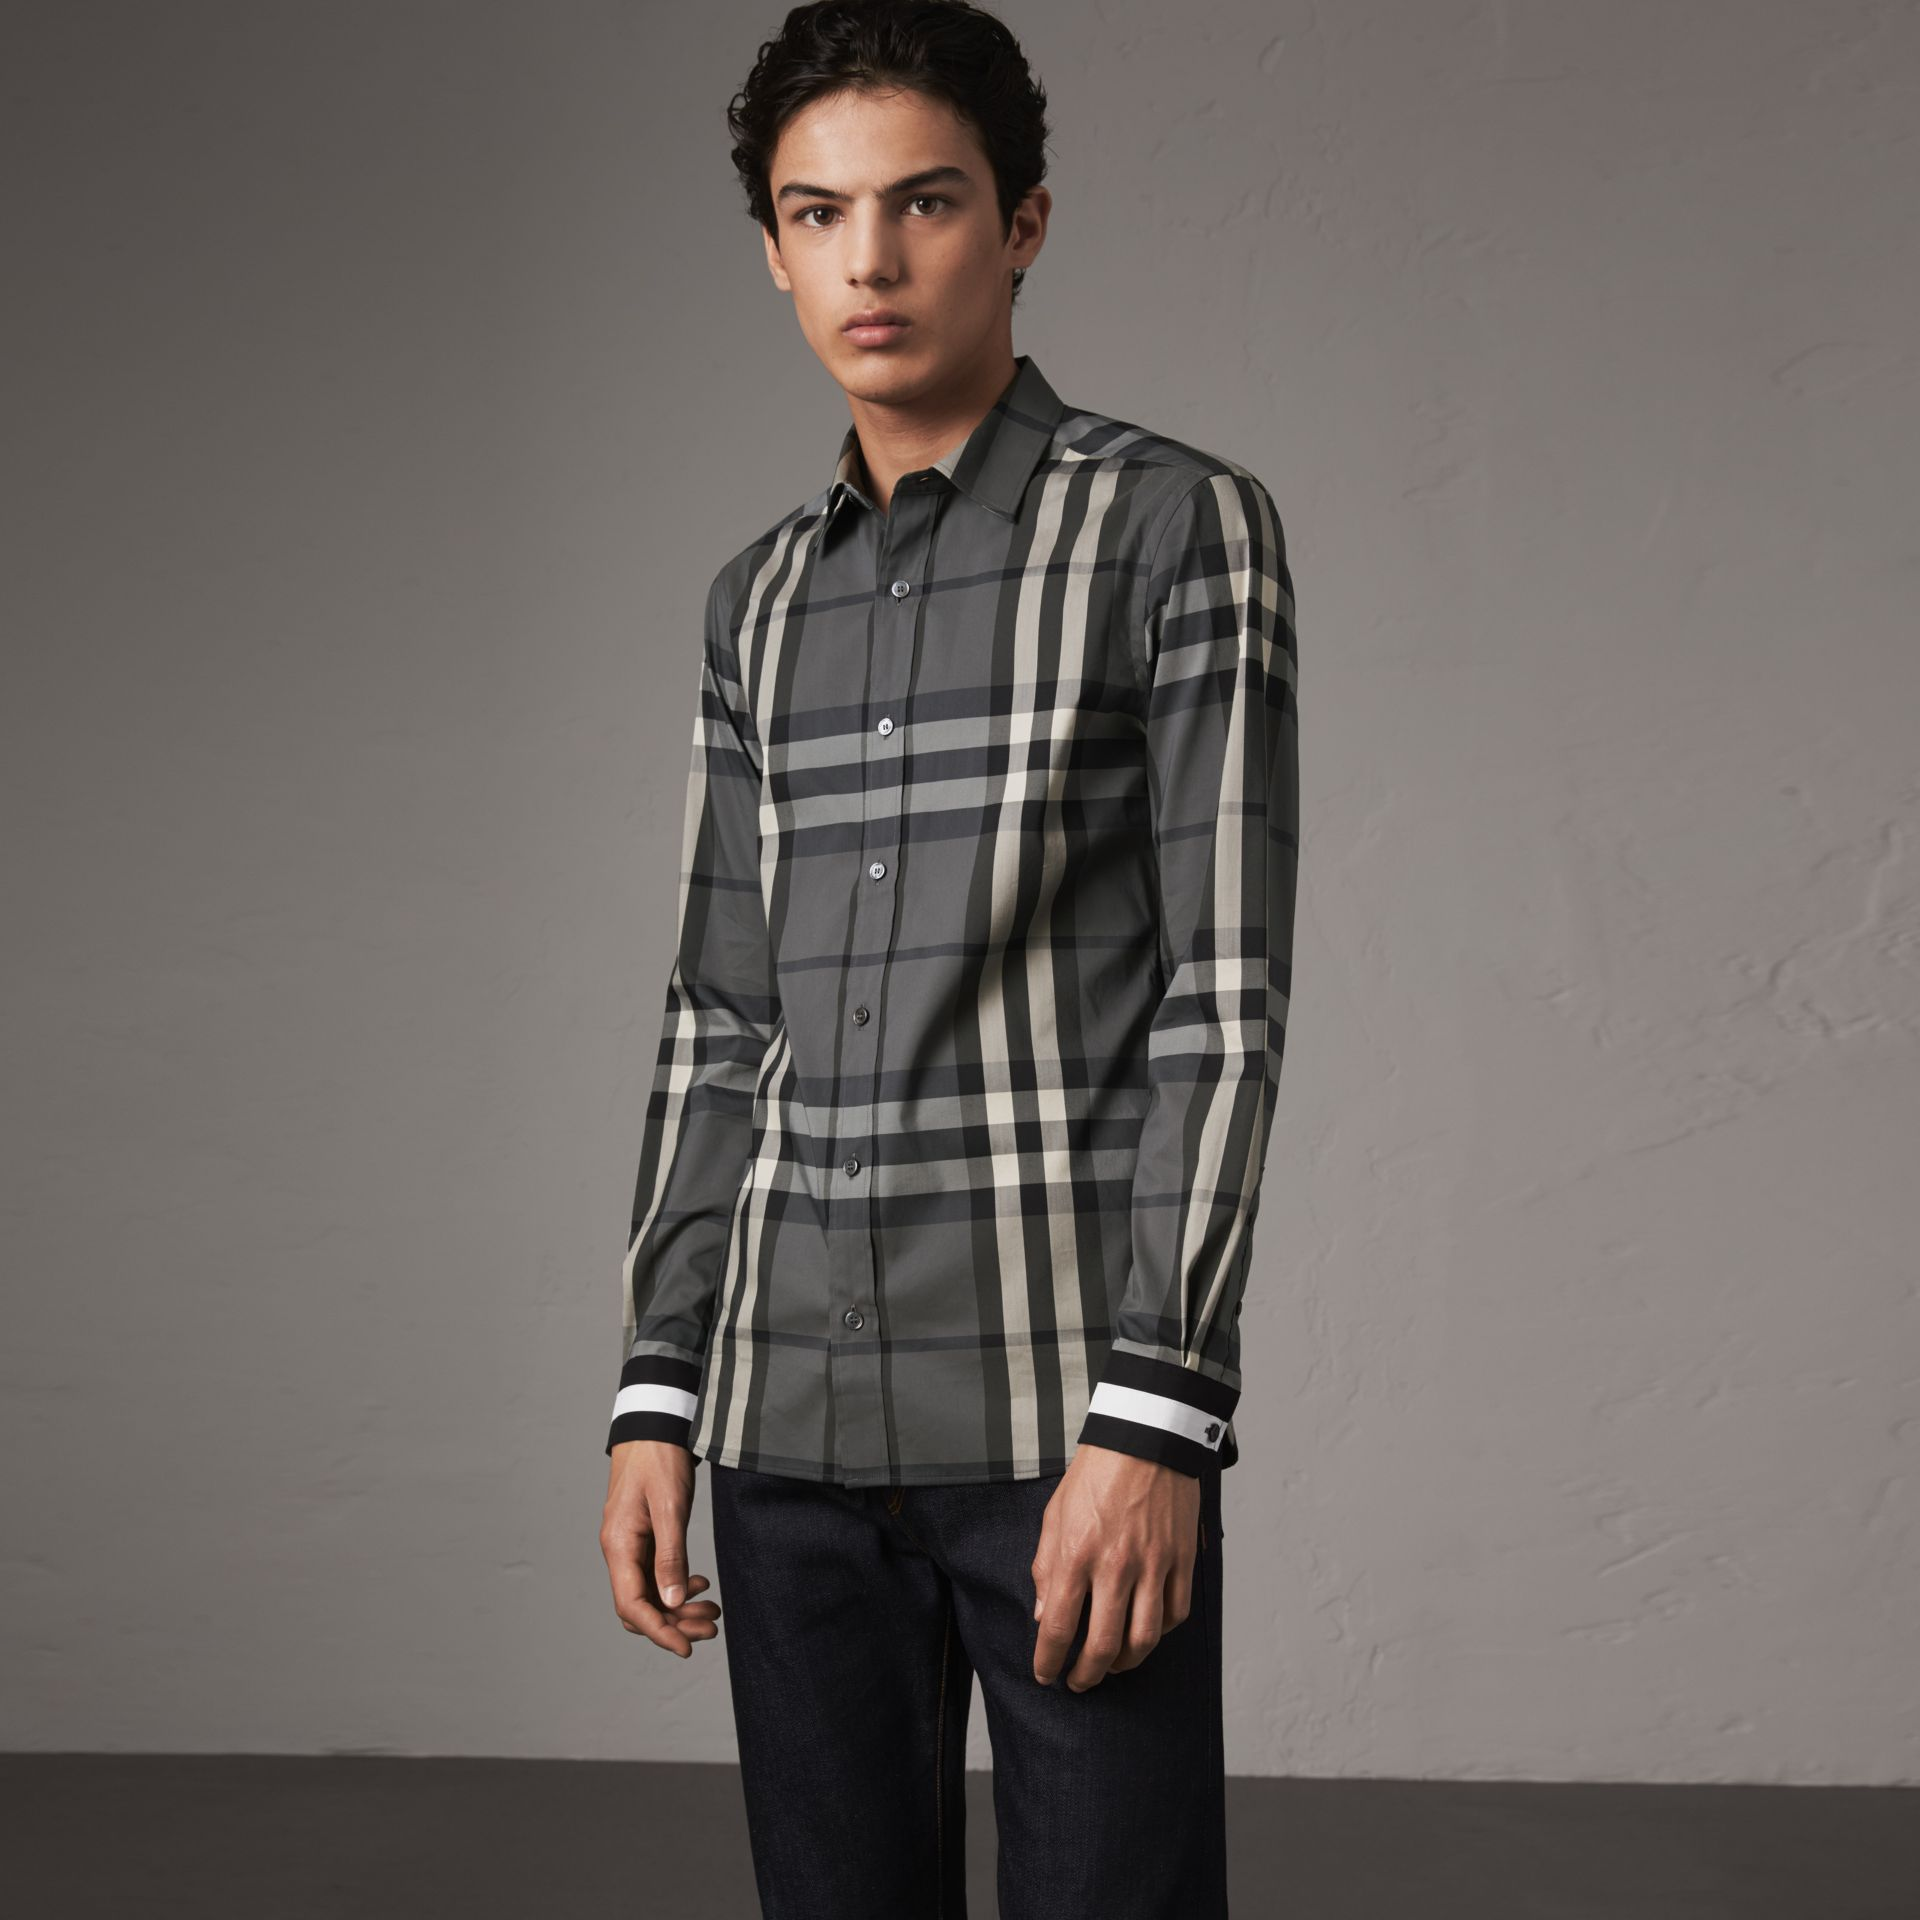 Striped Cuff Check Cotton Blend Shirt in Charcoal - Men | Burberry Singapore - gallery image 0